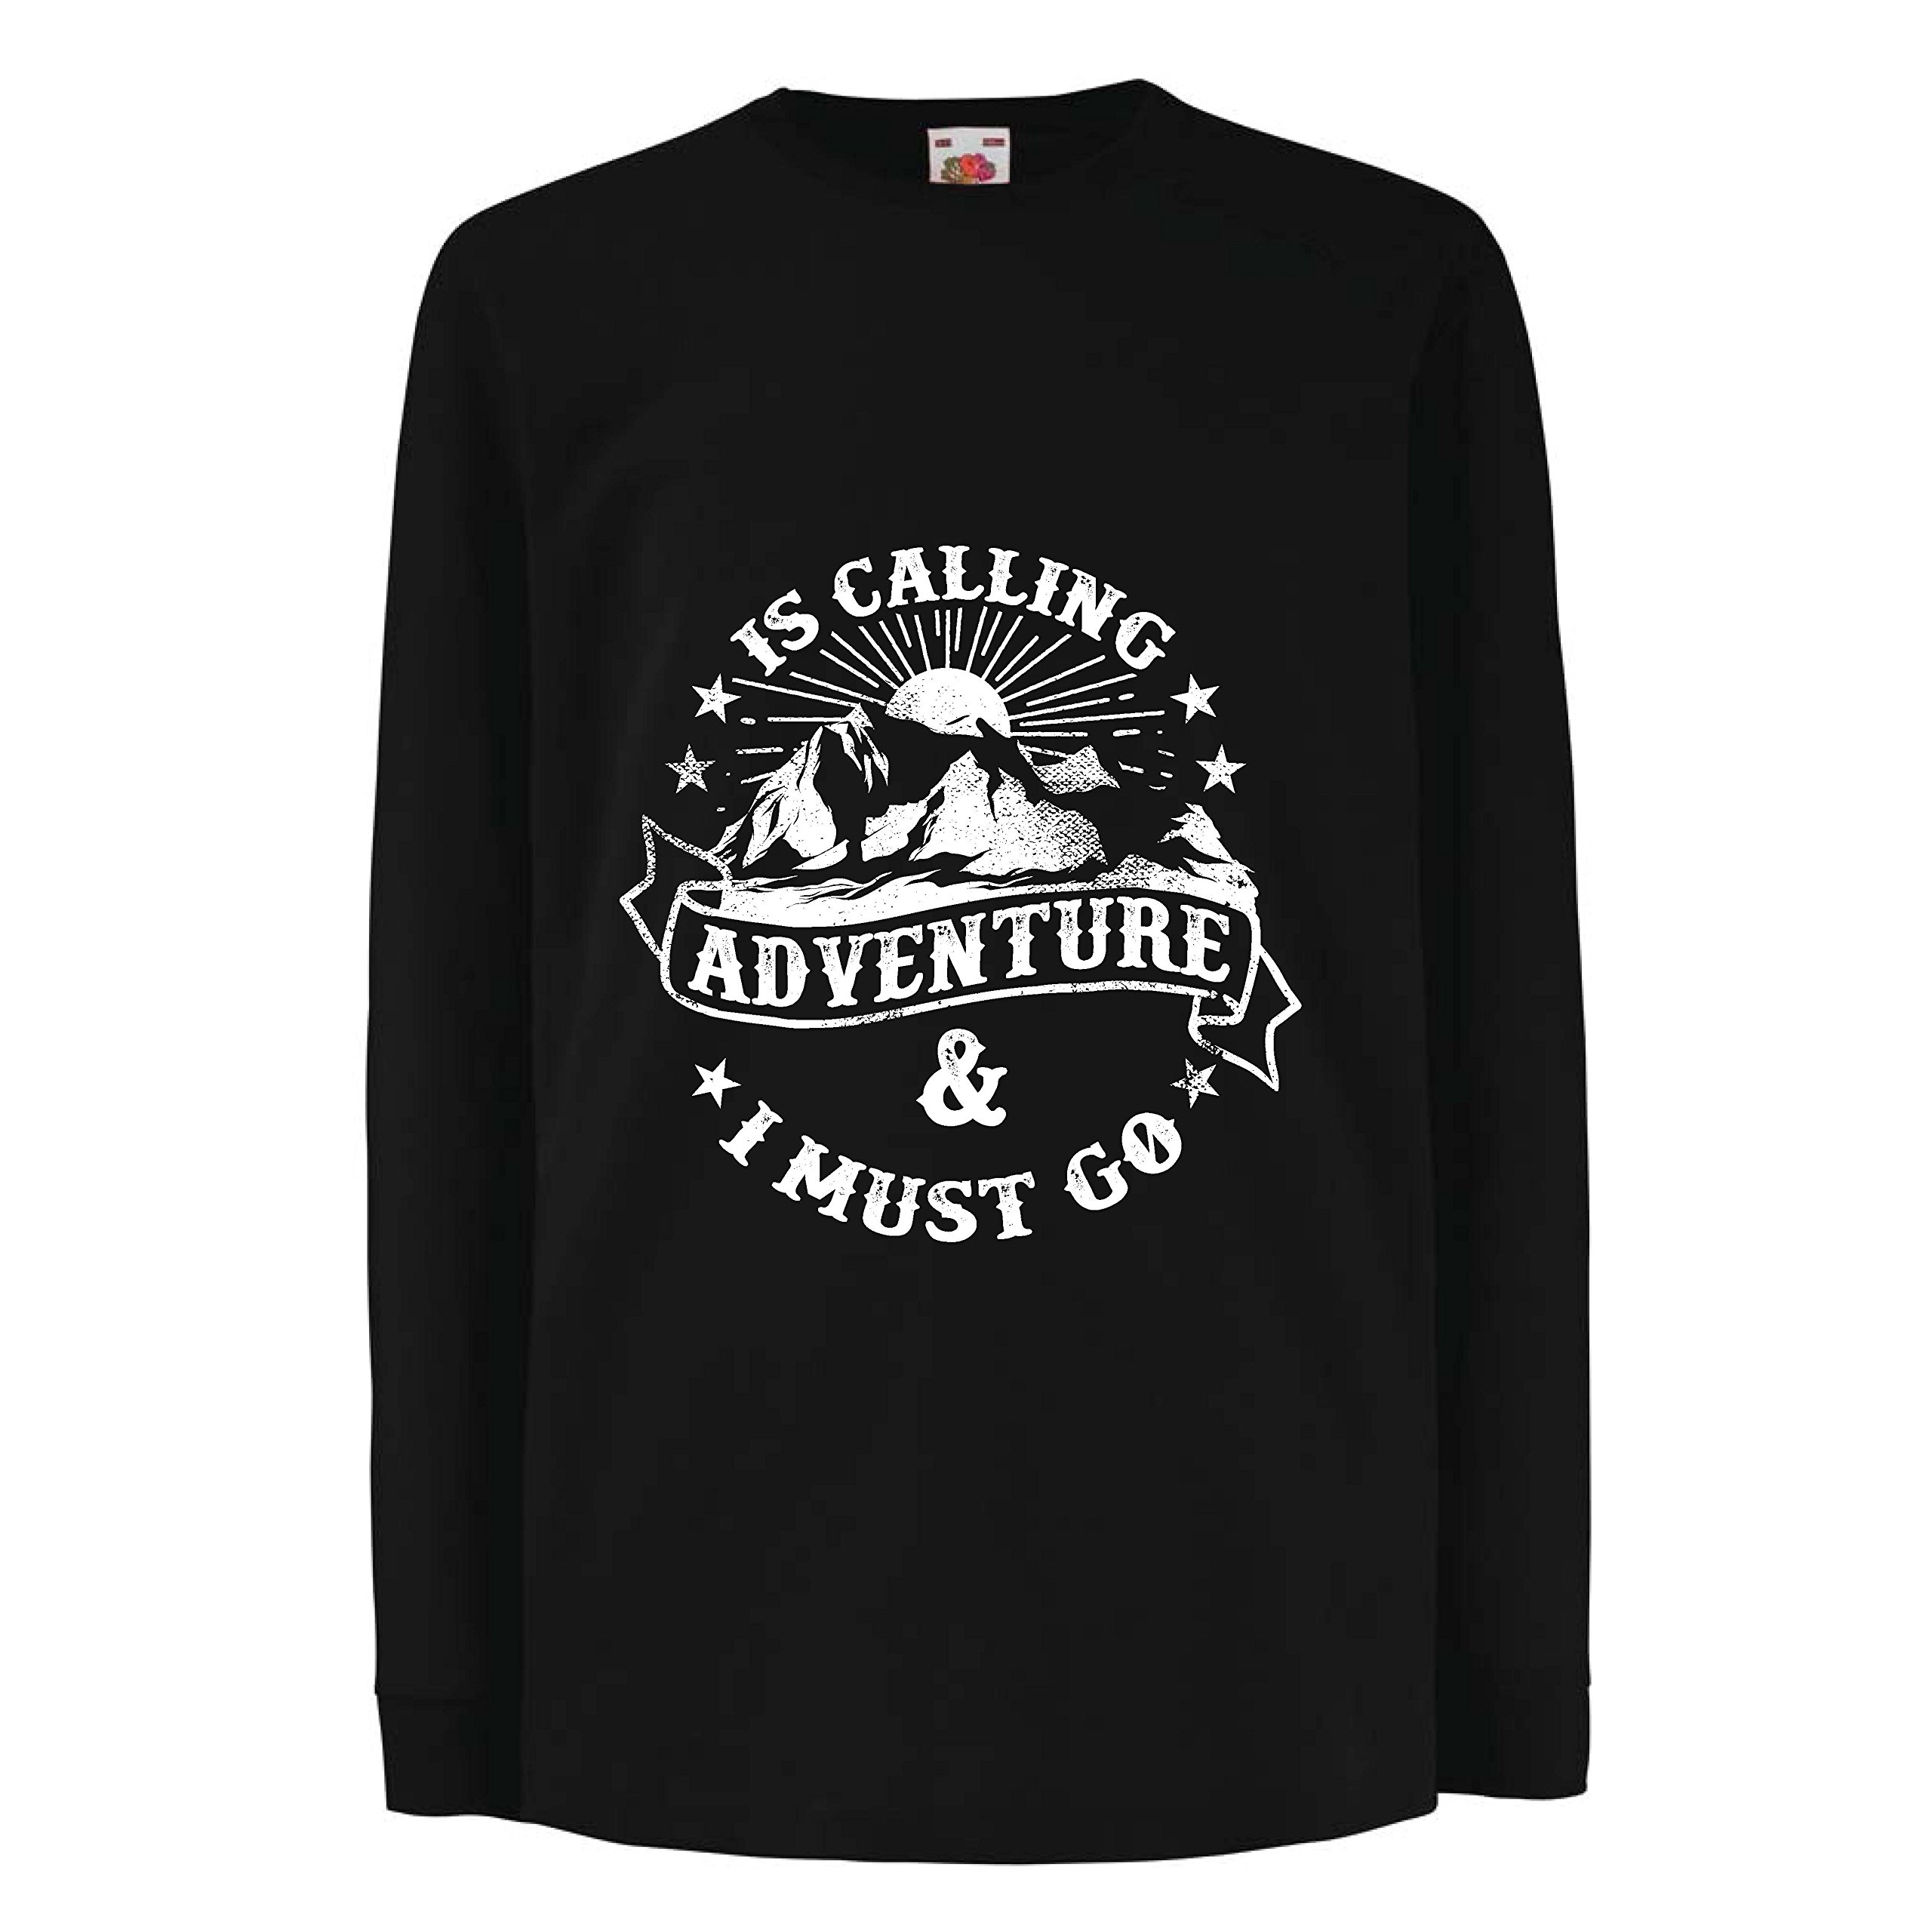 lepni.me Kids Boys/Girls T-Shirt Is Calling Adventure - Family Holiday Vacation Clothing, Mountain Hiking (14-15 Years Black Multi Color) by lepni.me